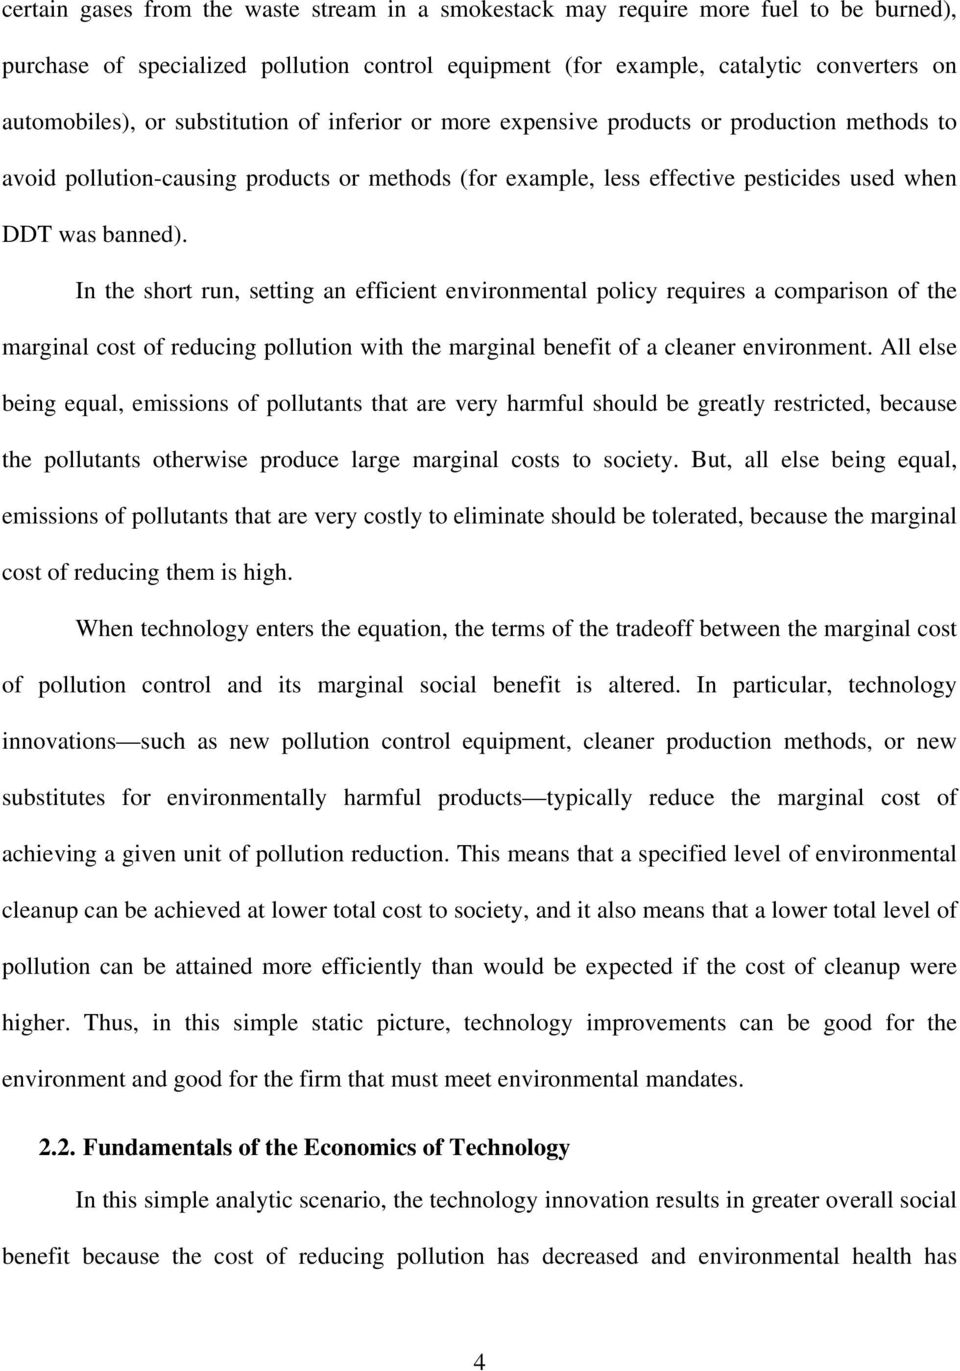 In the short run, setting an efficient environmental policy requires a comparison of the marginal cost of reducing pollution with the marginal benefit of a cleaner environment.